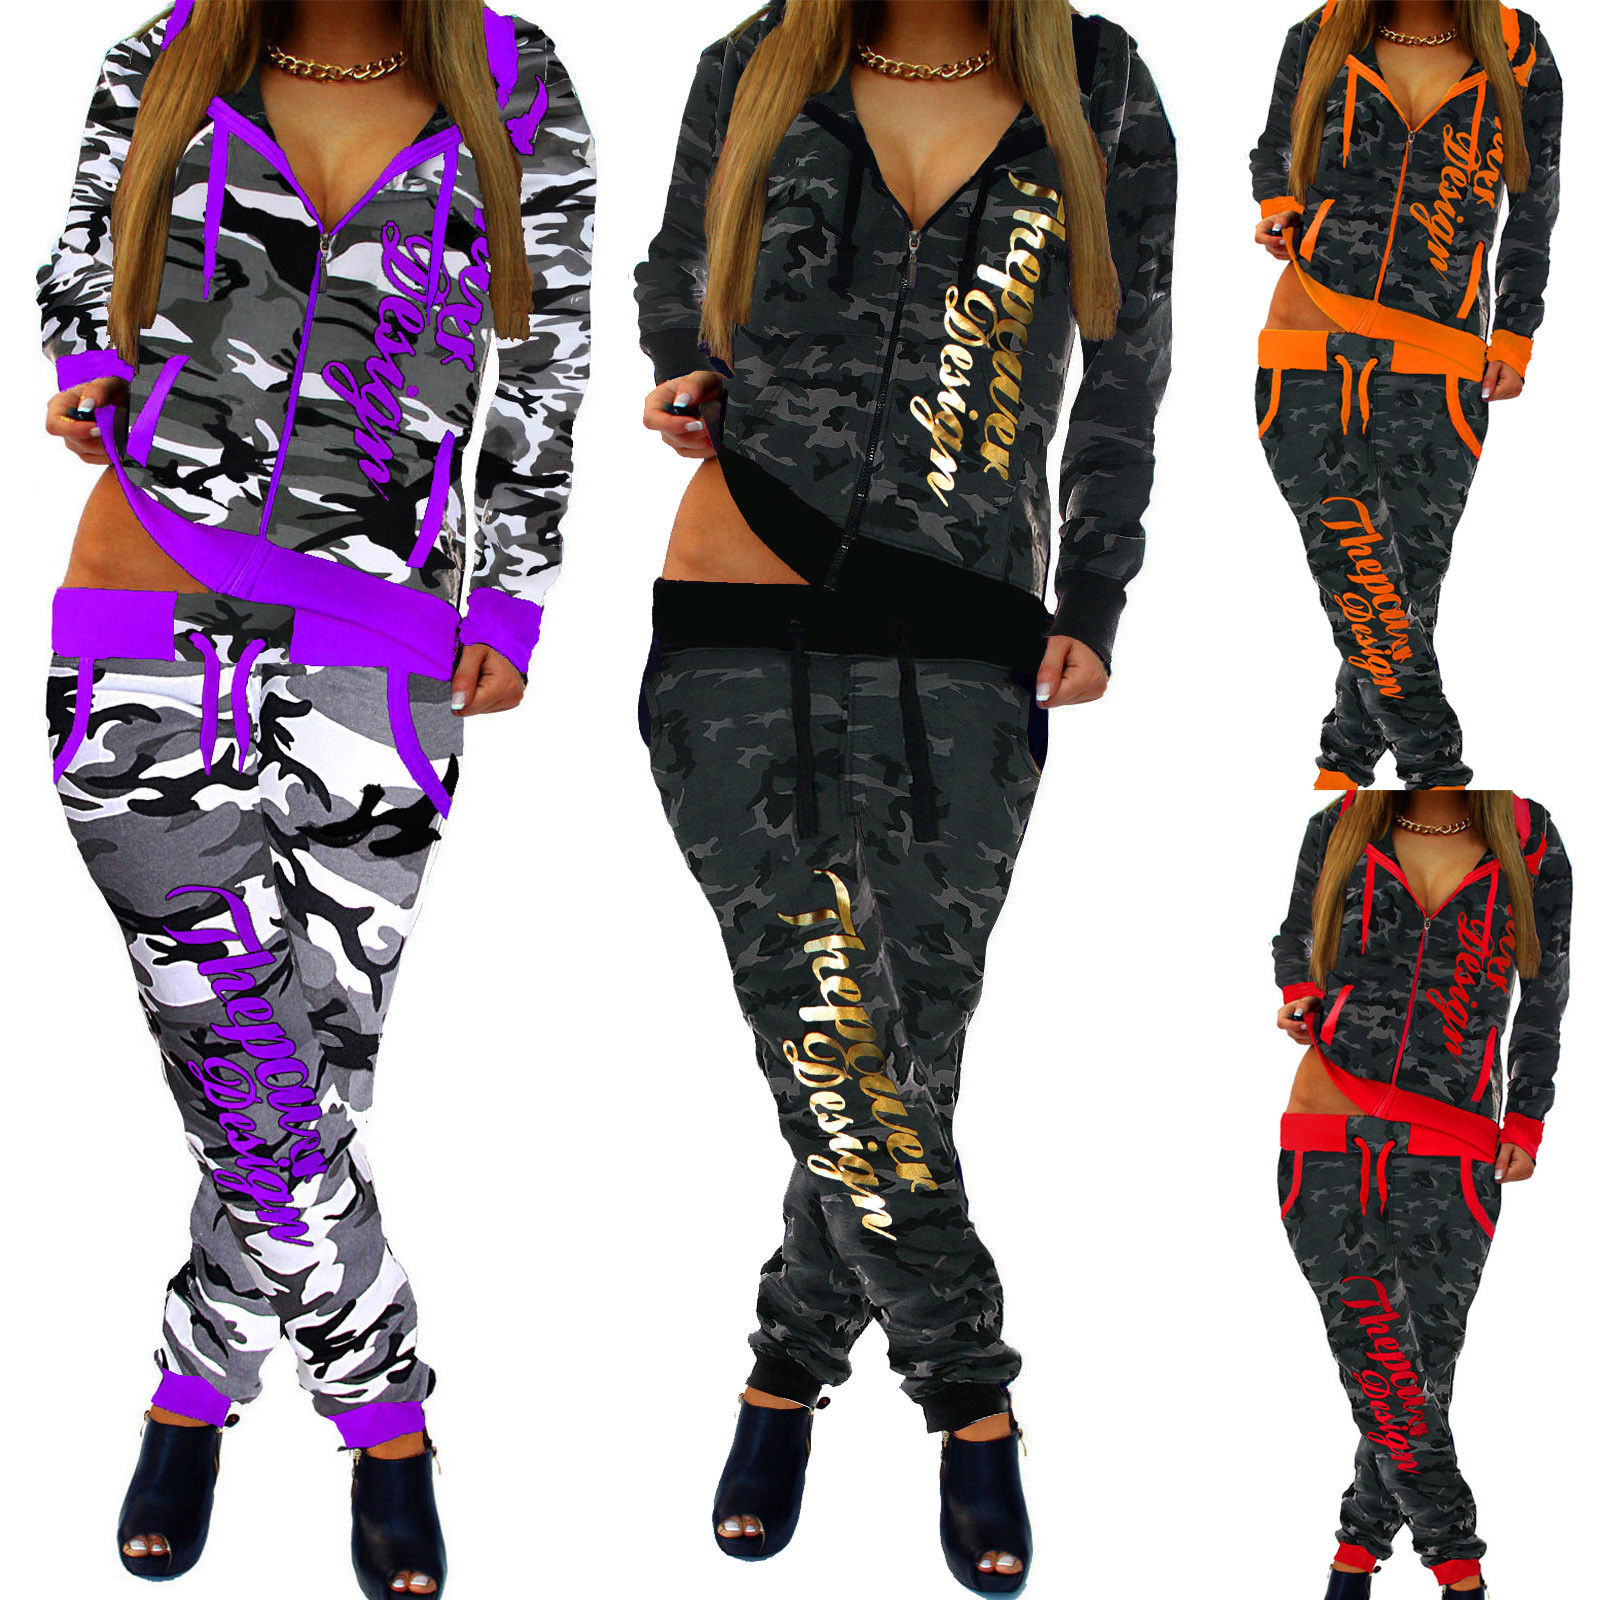 ZOGAA 2019 New 2 Piece Sets Women's Fashion Clothing Women Casual Camouflage Outwear Style Sweatsuits For Women Tracksuit S-3XL